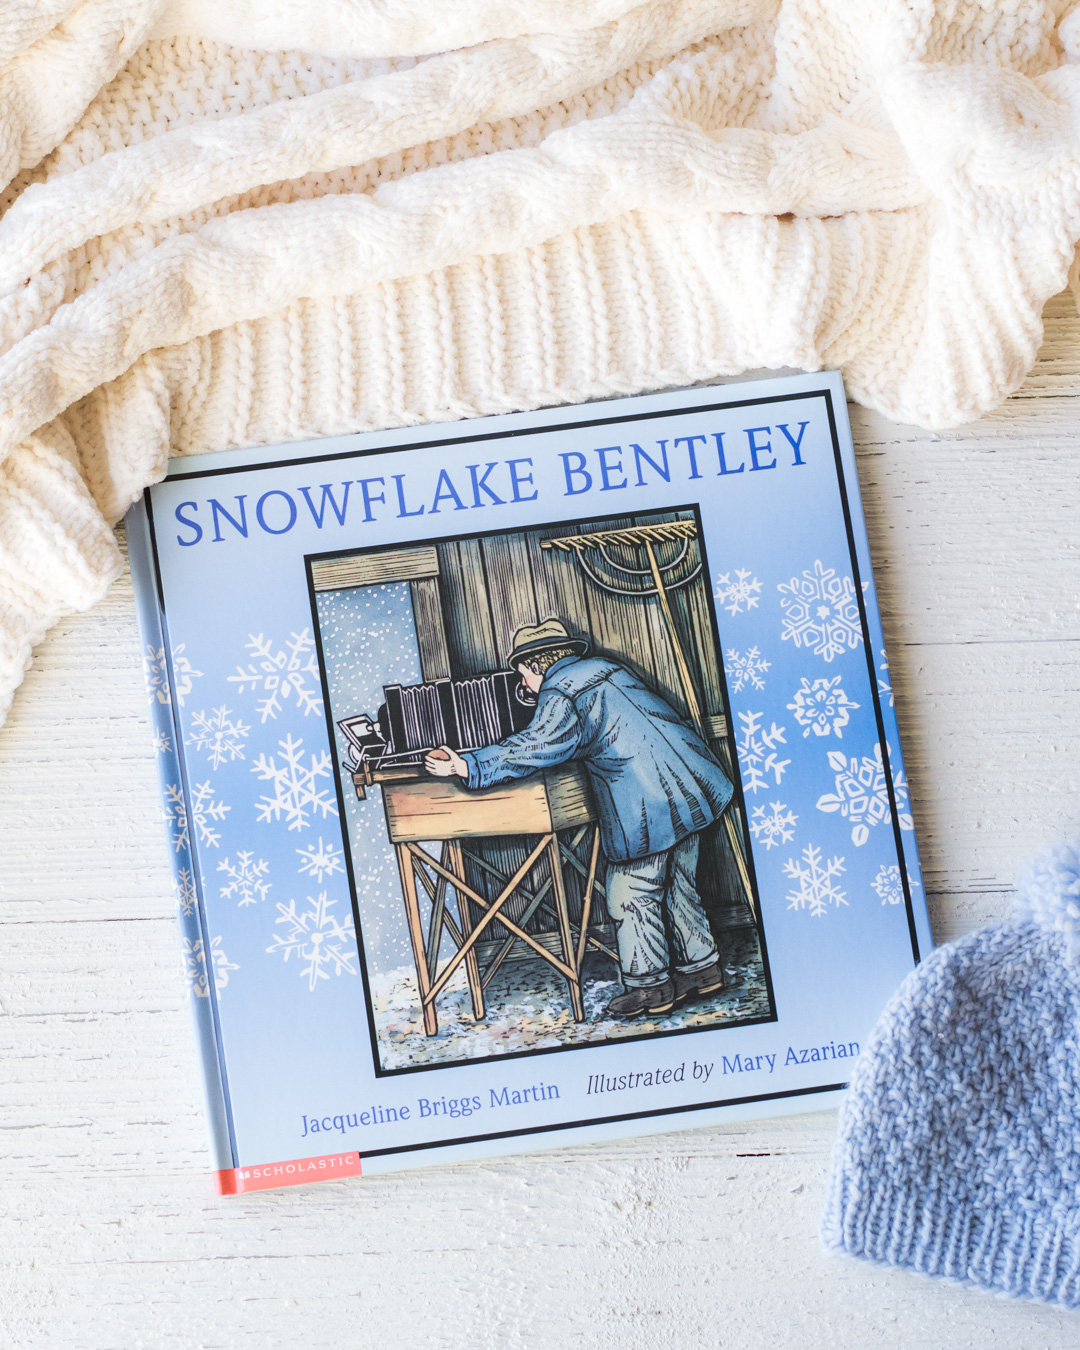 Snowflake Bentley picture book on a white surface.